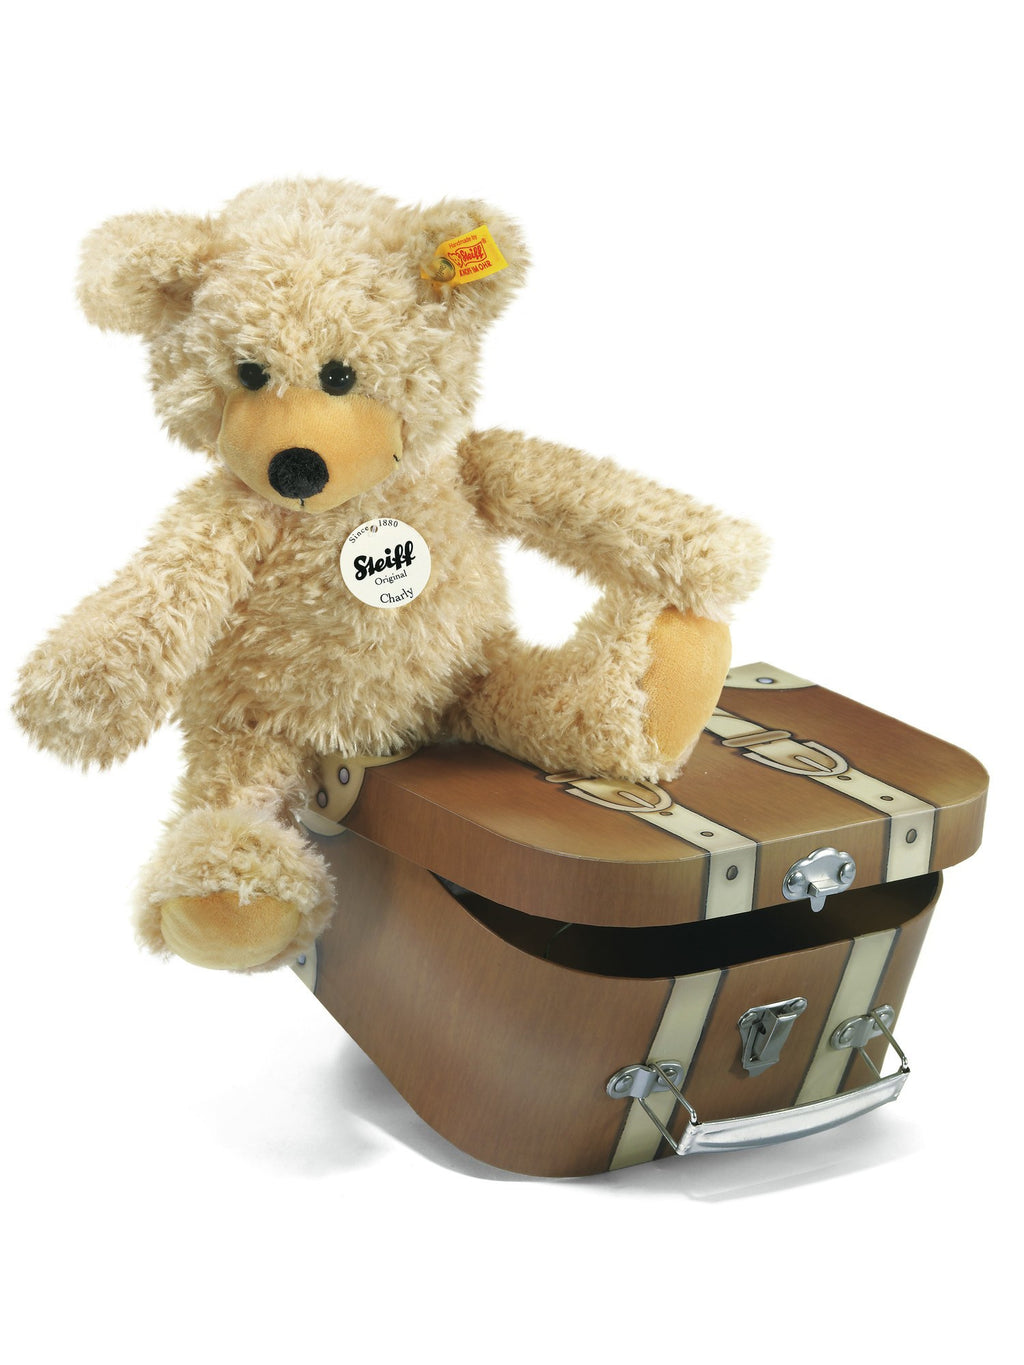 Steiff Charly Dangling Teddy Bear in Suitcase